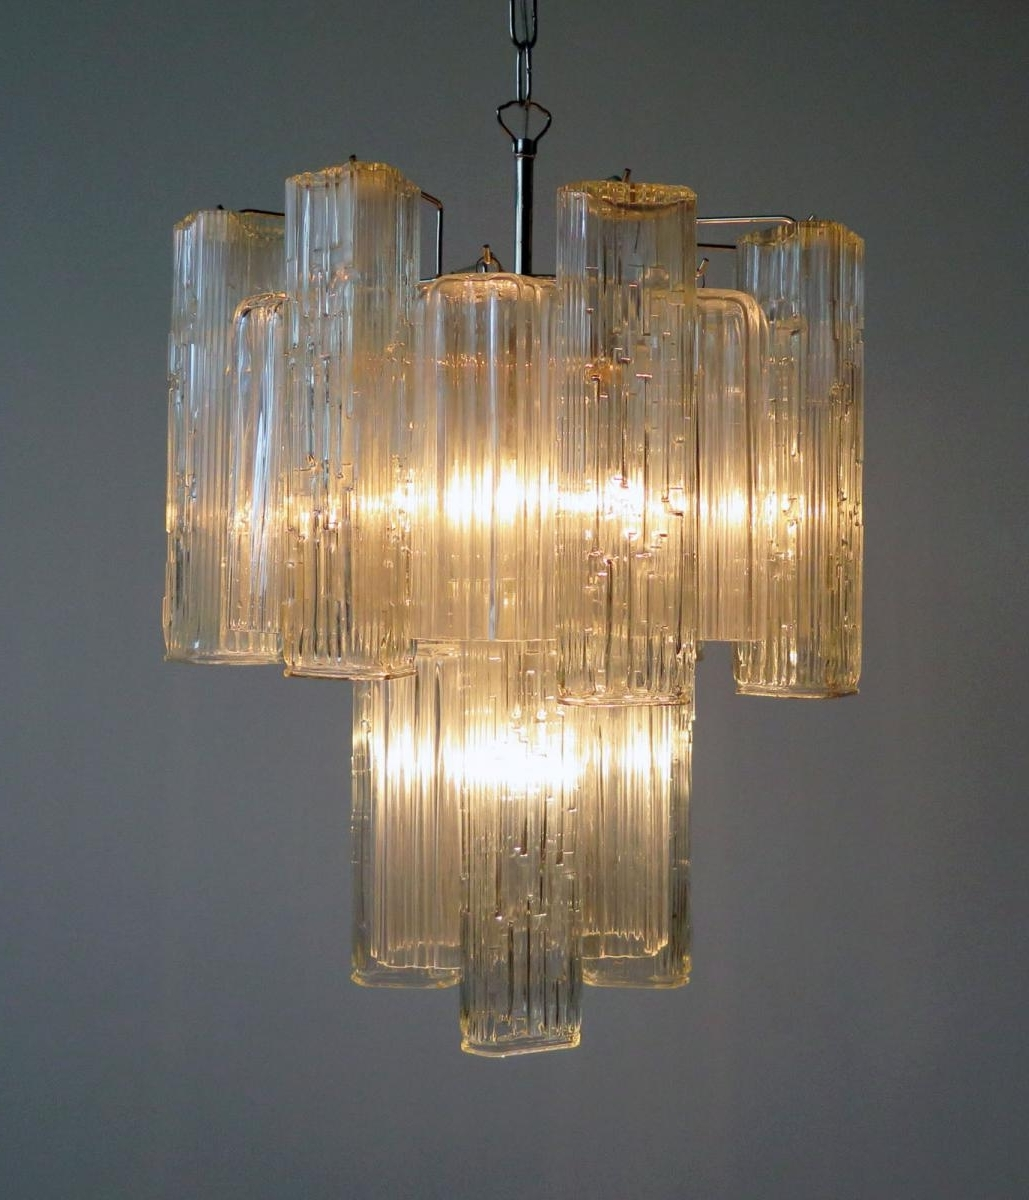 Best And Newest Glass Chandelier Within Vintage Murano Glass Chandelier From Murano For Sale At Pamono (View 2 of 15)